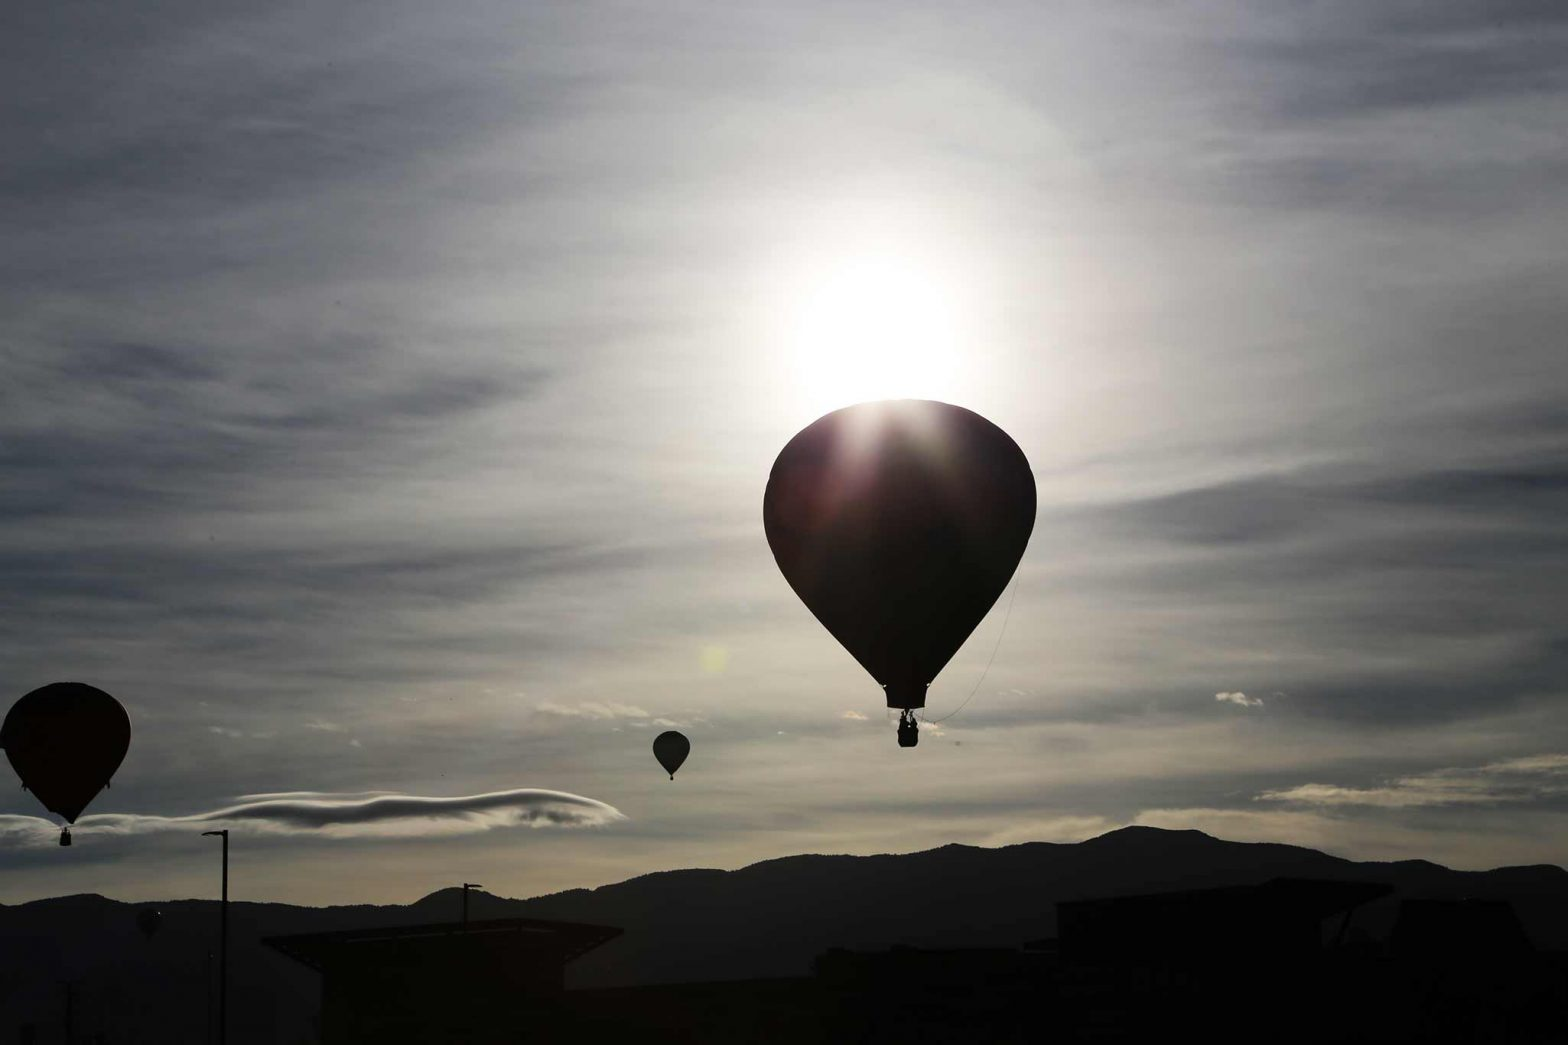 Balloon Fiesta - Albuquerque New Mexico